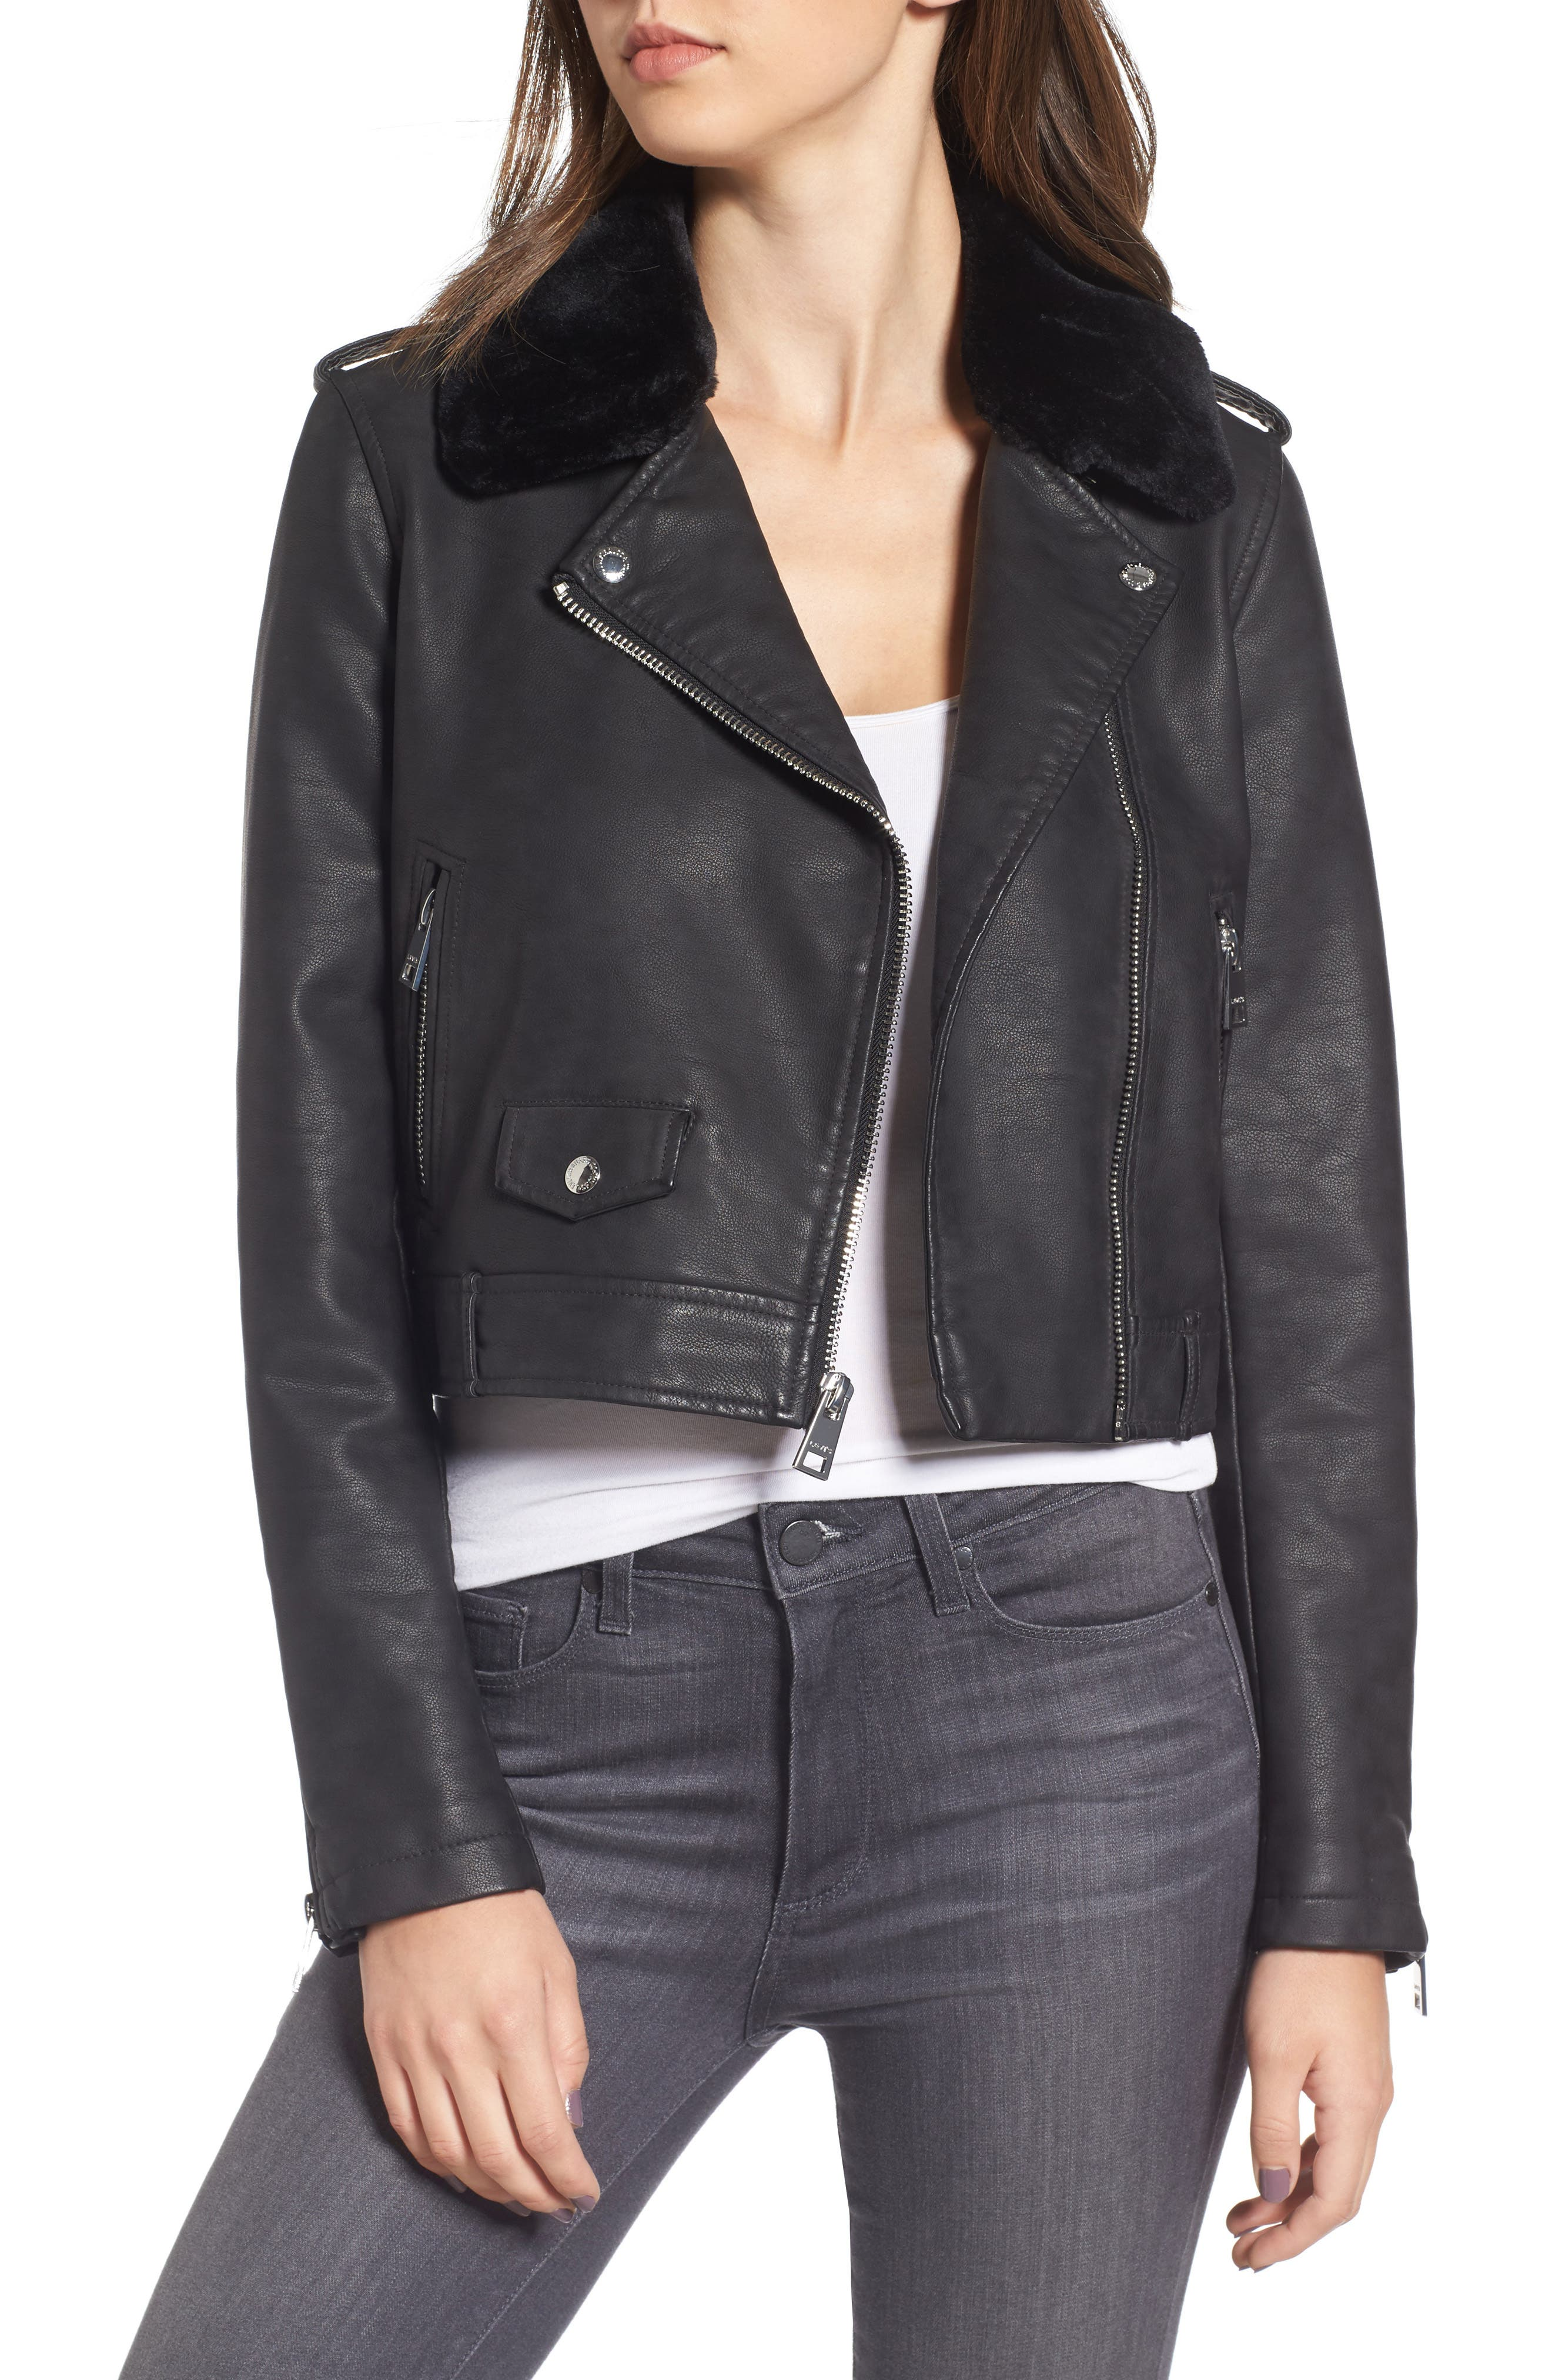 Levis<sup>®</sup> Sherpa Faux Leather Moto Jacket with Faux Fur Collar,                             Main thumbnail 1, color,                             Black